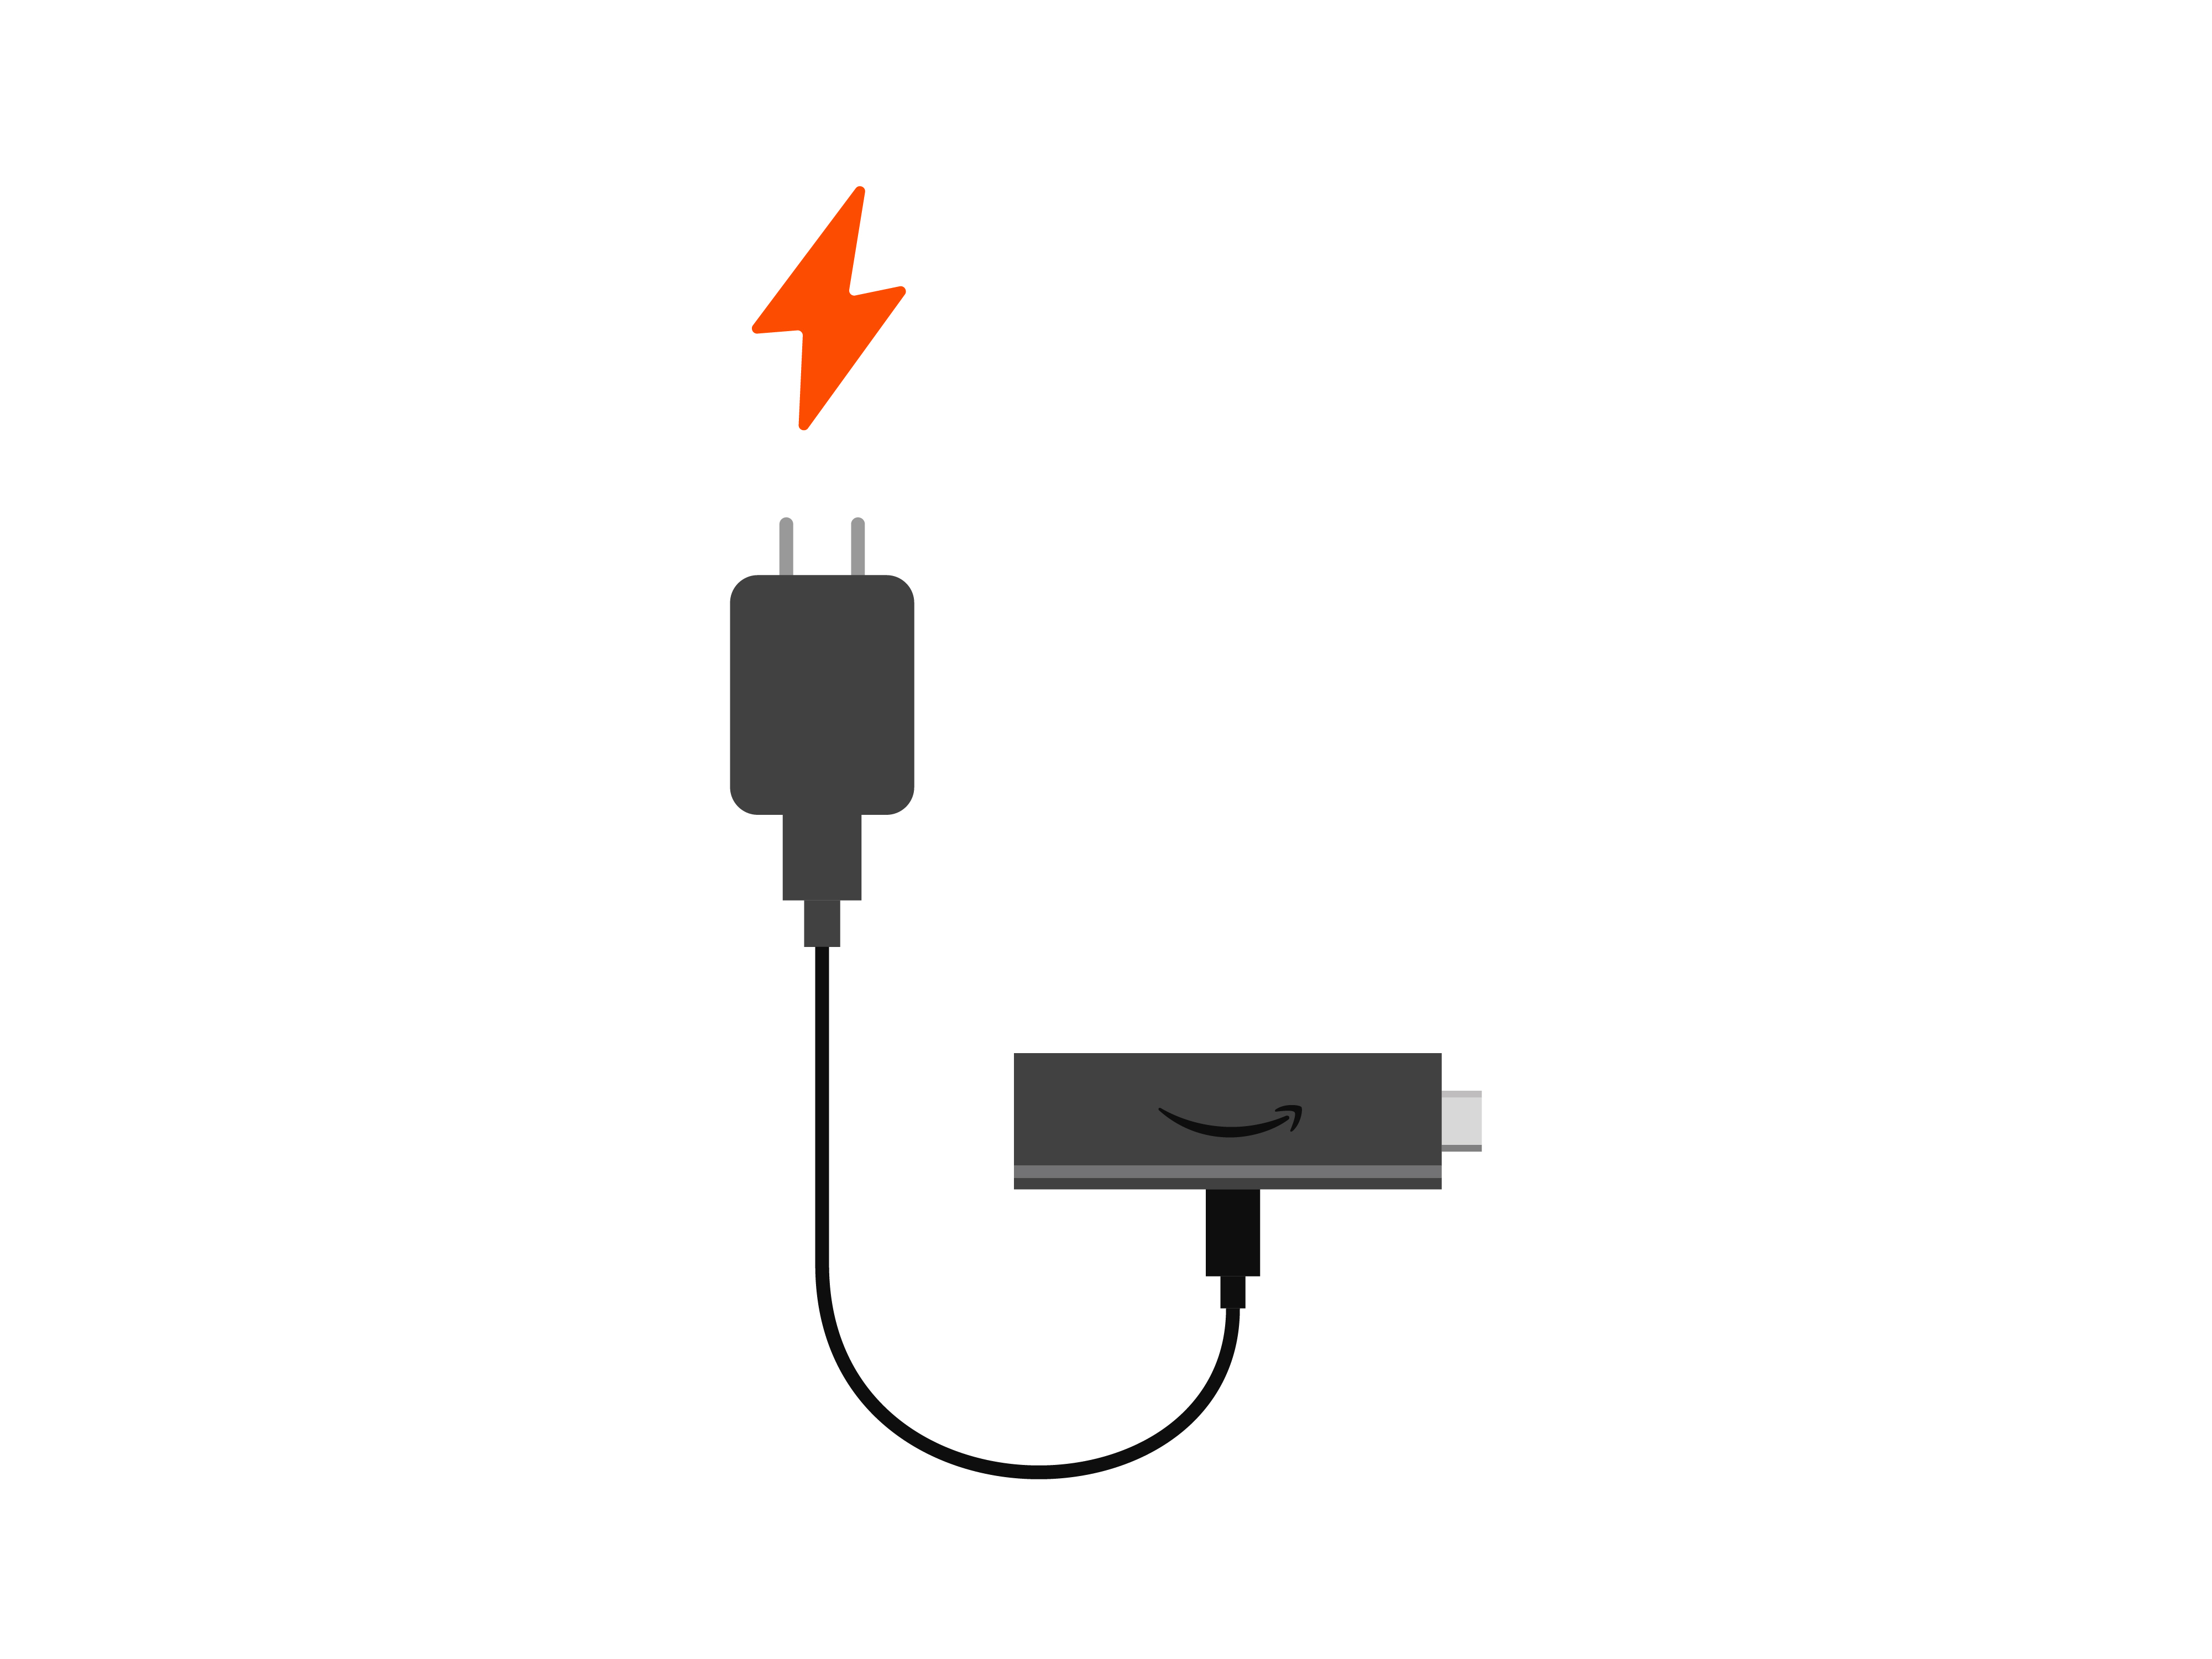 Plug into wall outlet